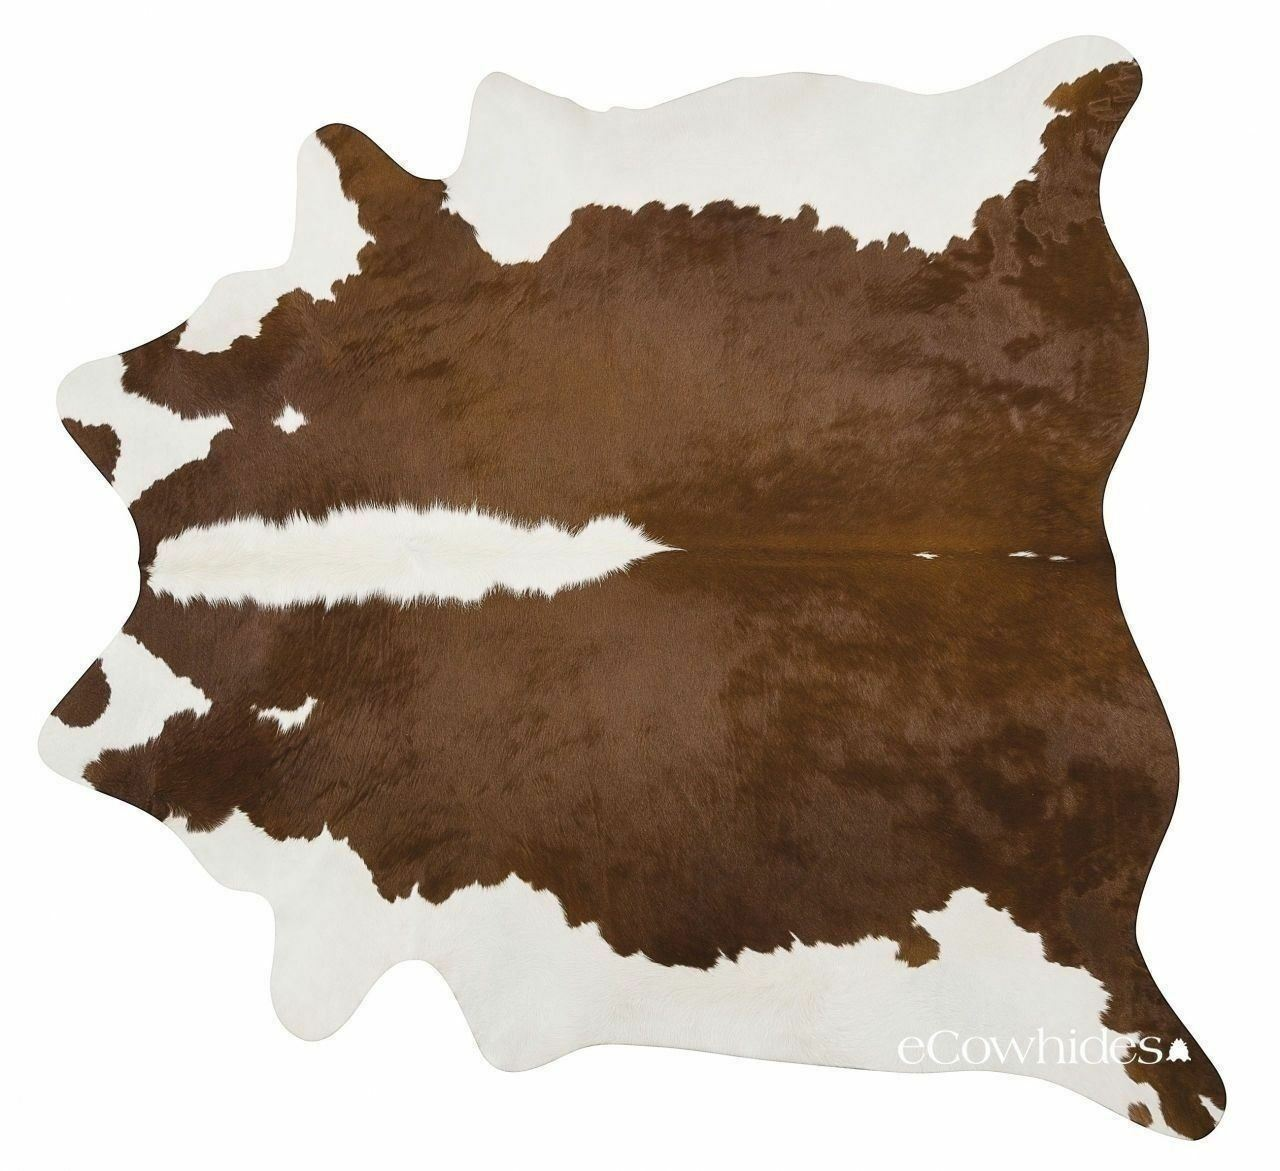 Hereford Brazilian Cowhide Rug Cow Hide Area Rugs Leather Size Xl